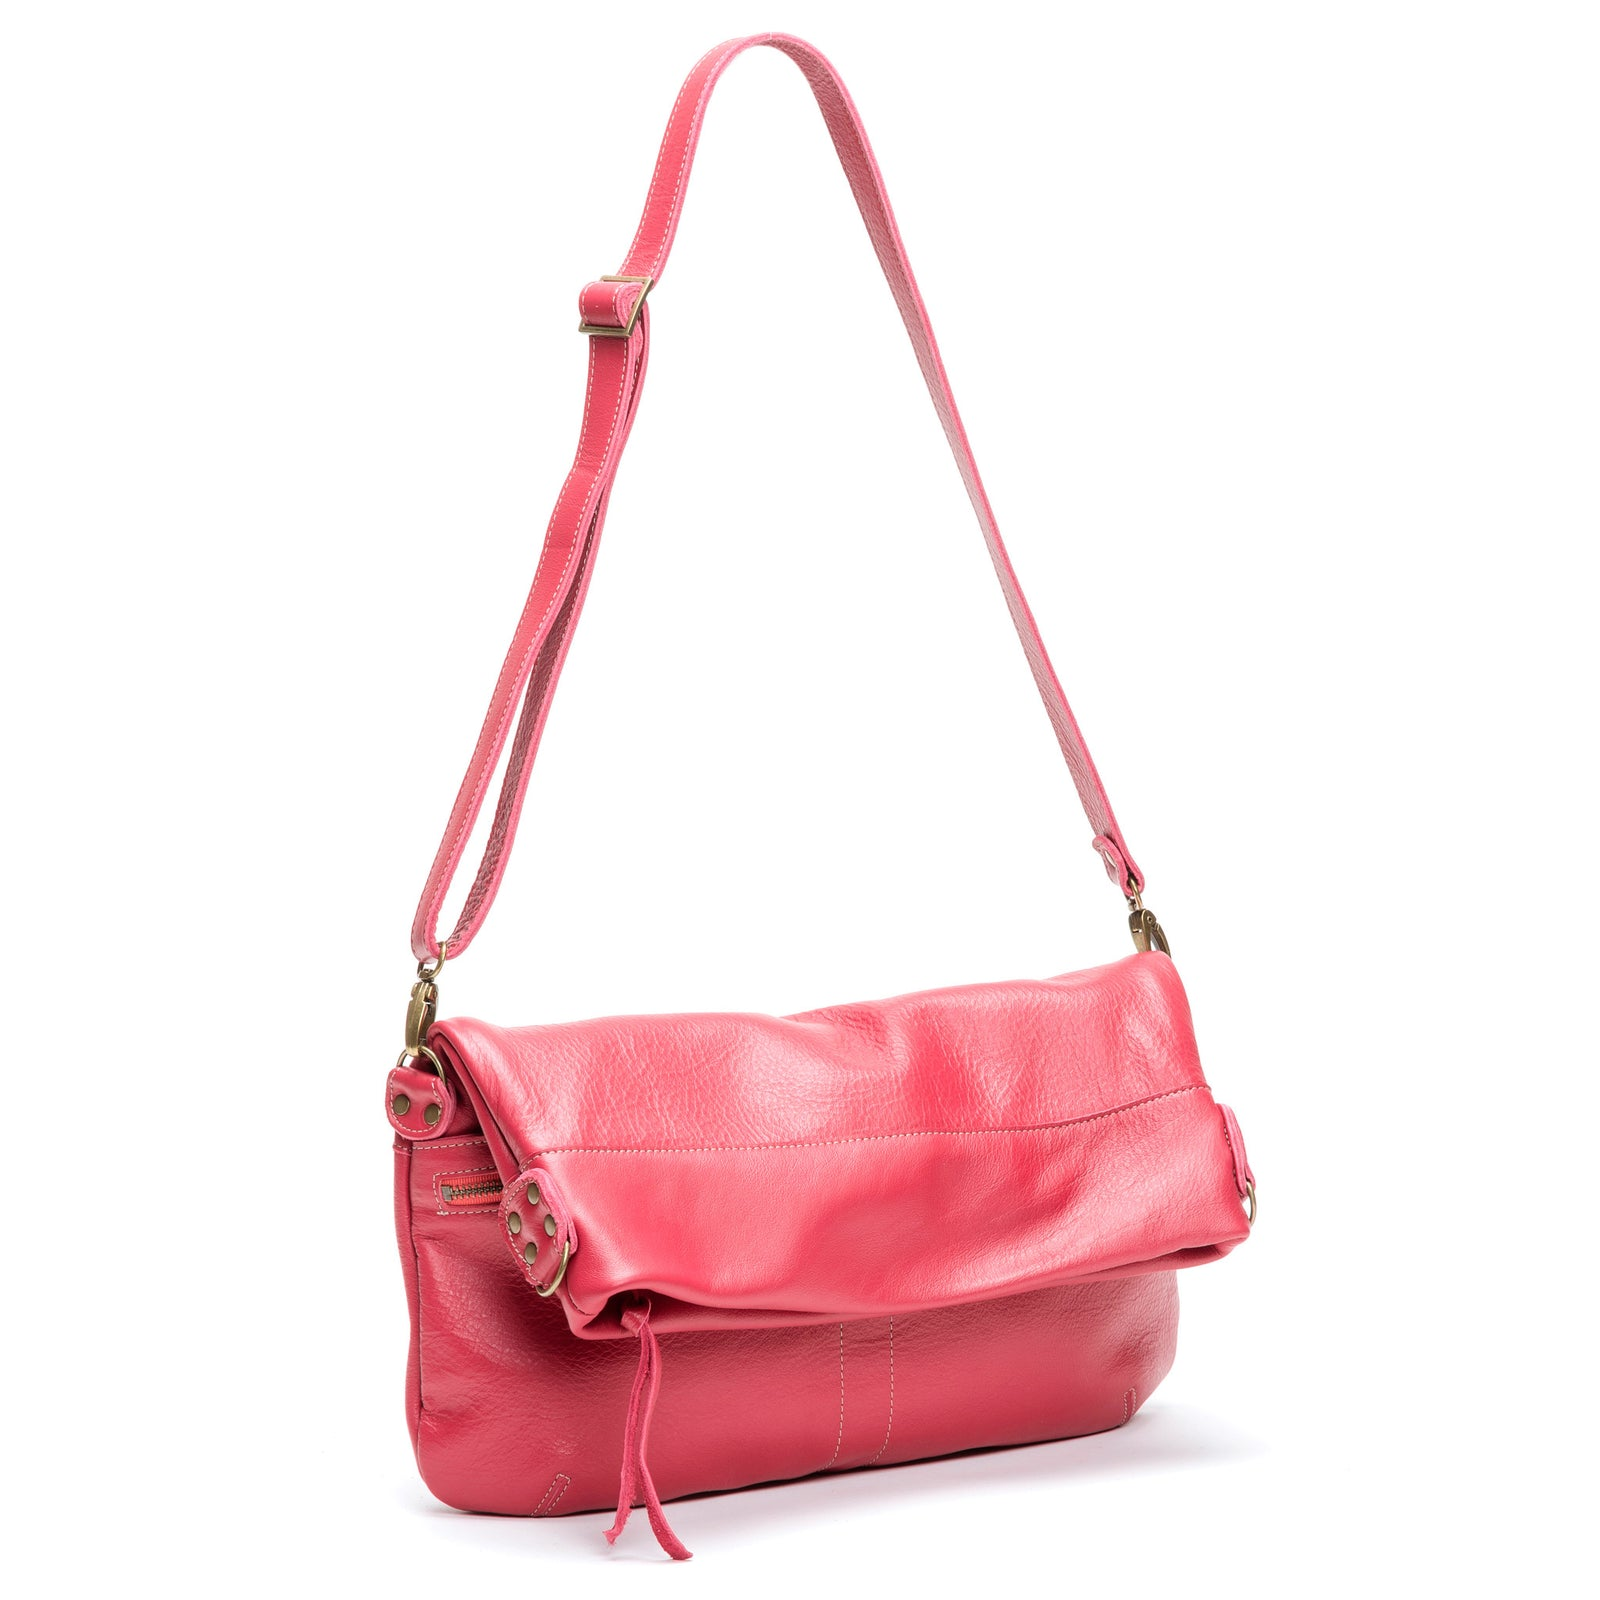 Lauren Crossbody - Sangria - Brynn Capella, Large Crossbody